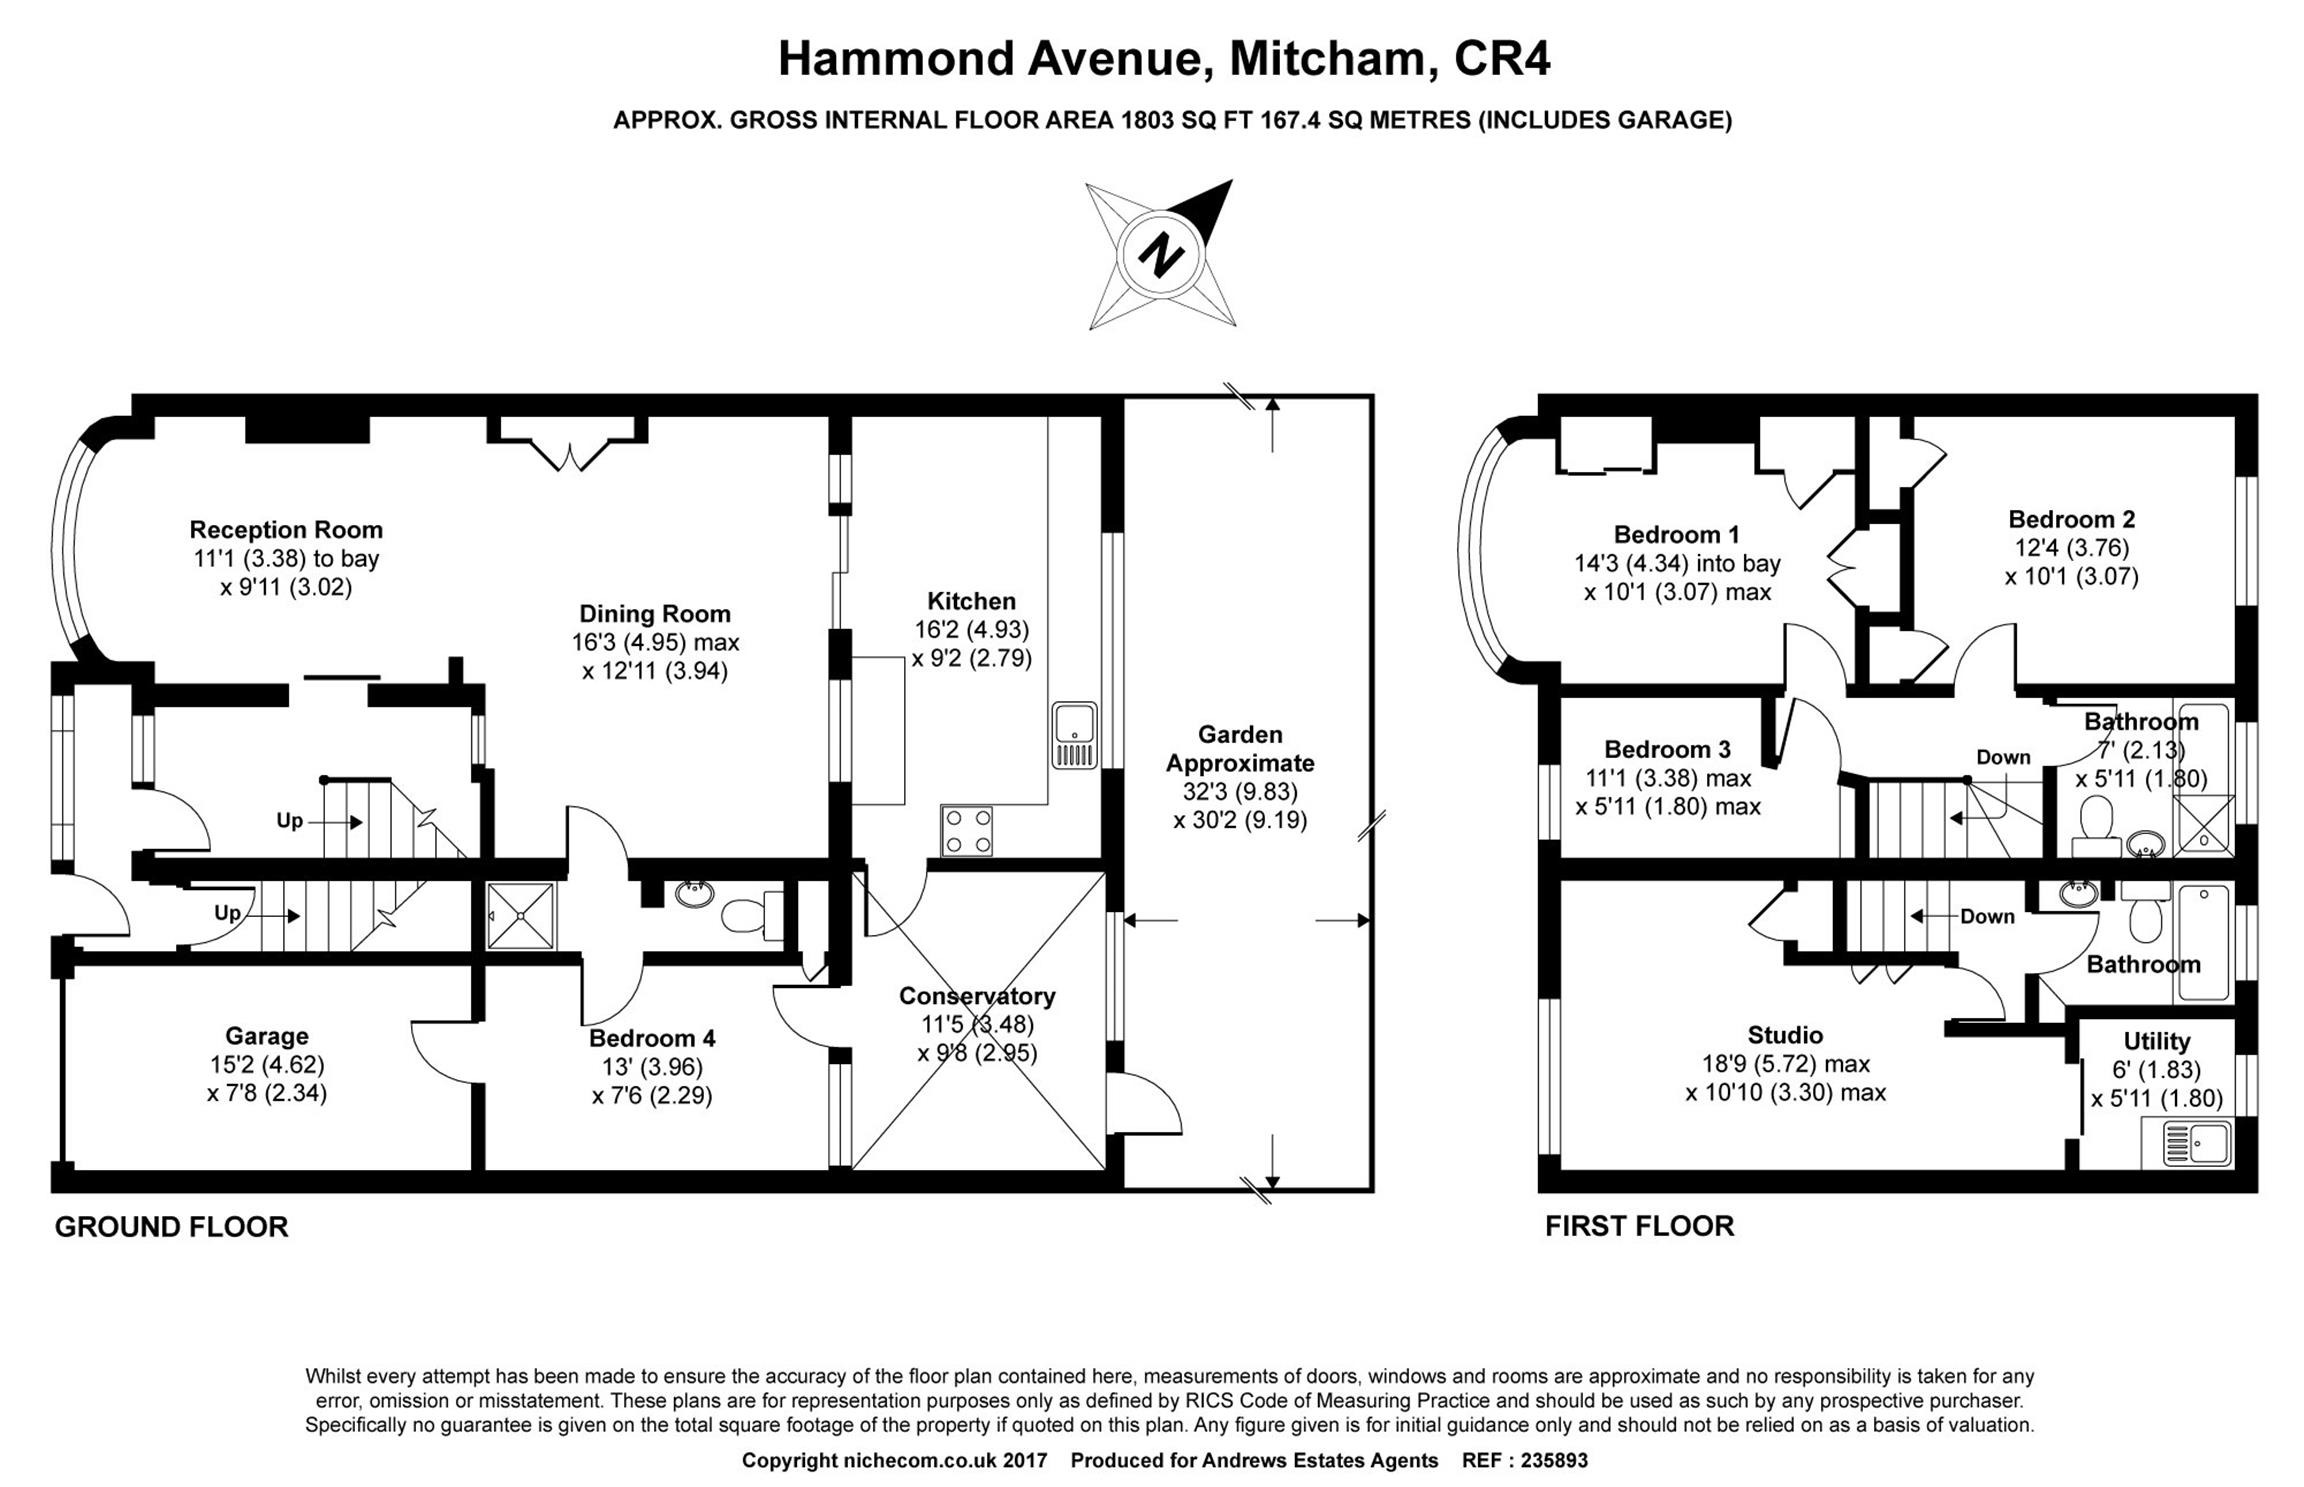 5 Bed Semi Detached House For Sale In Hammond Avenue